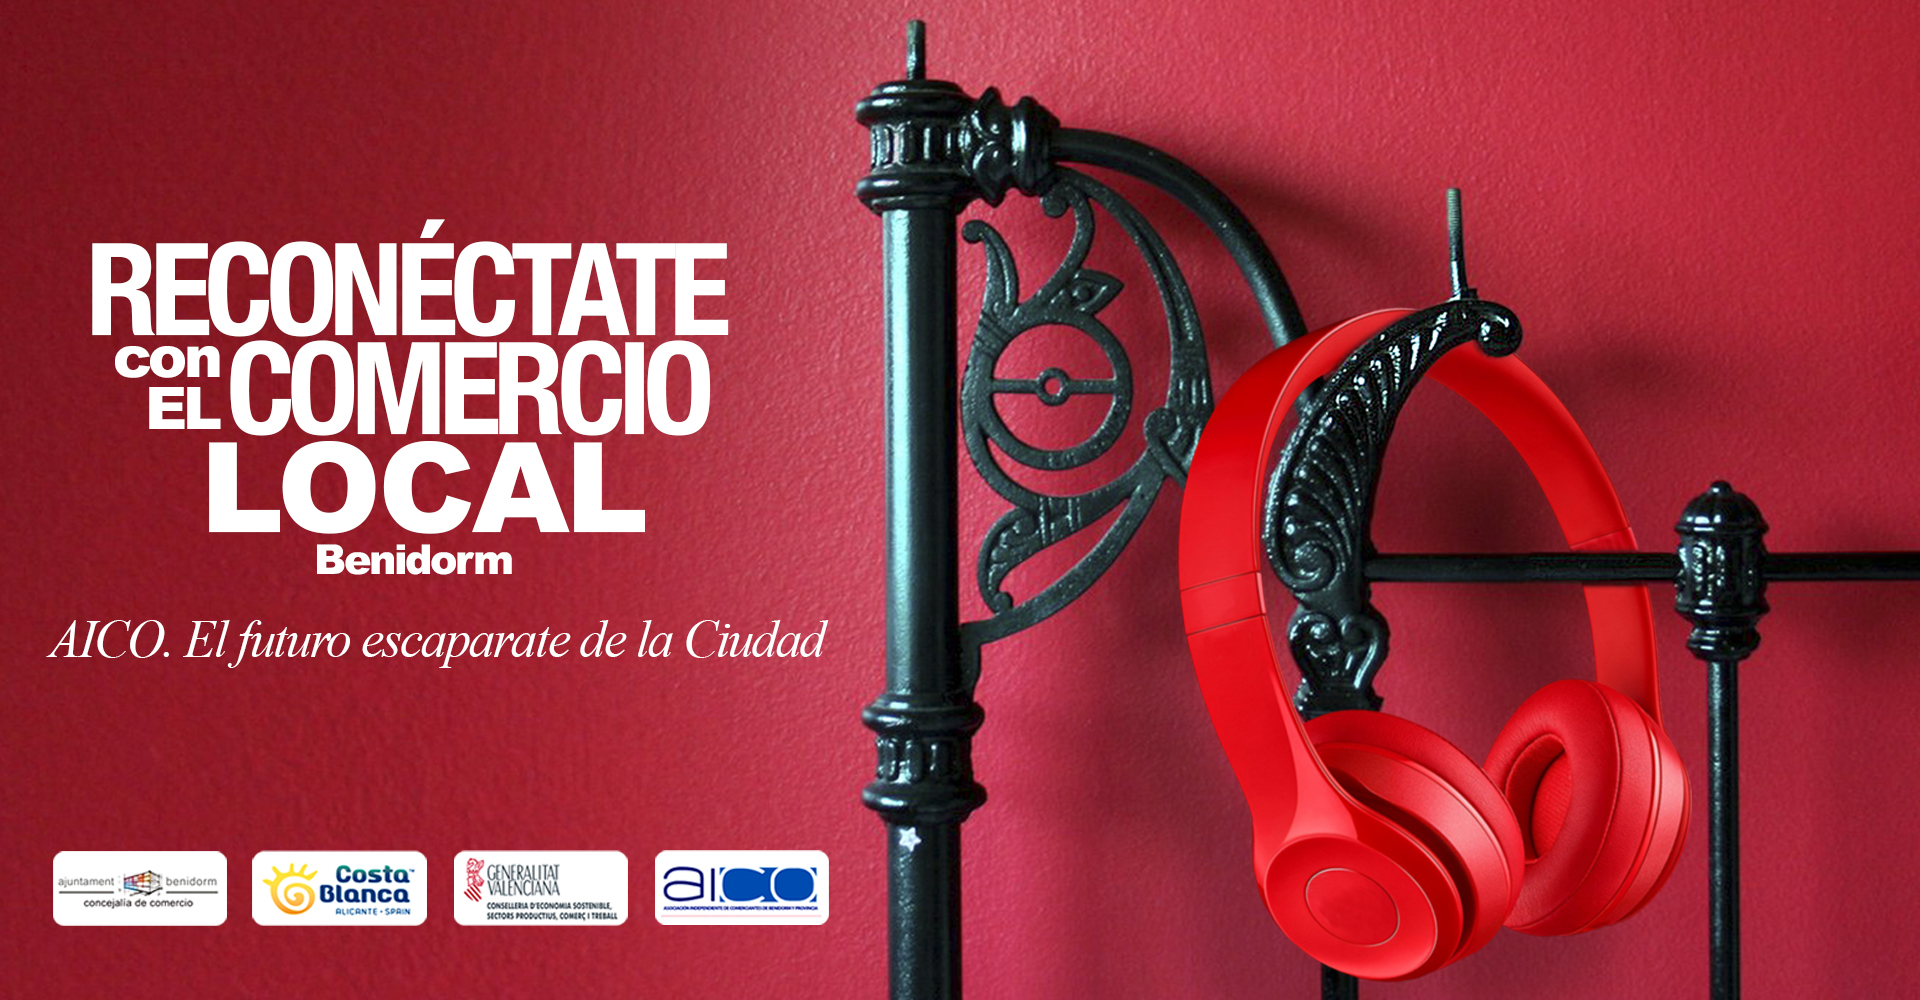 RECONECTA CON EL COMERCIO LOCAL